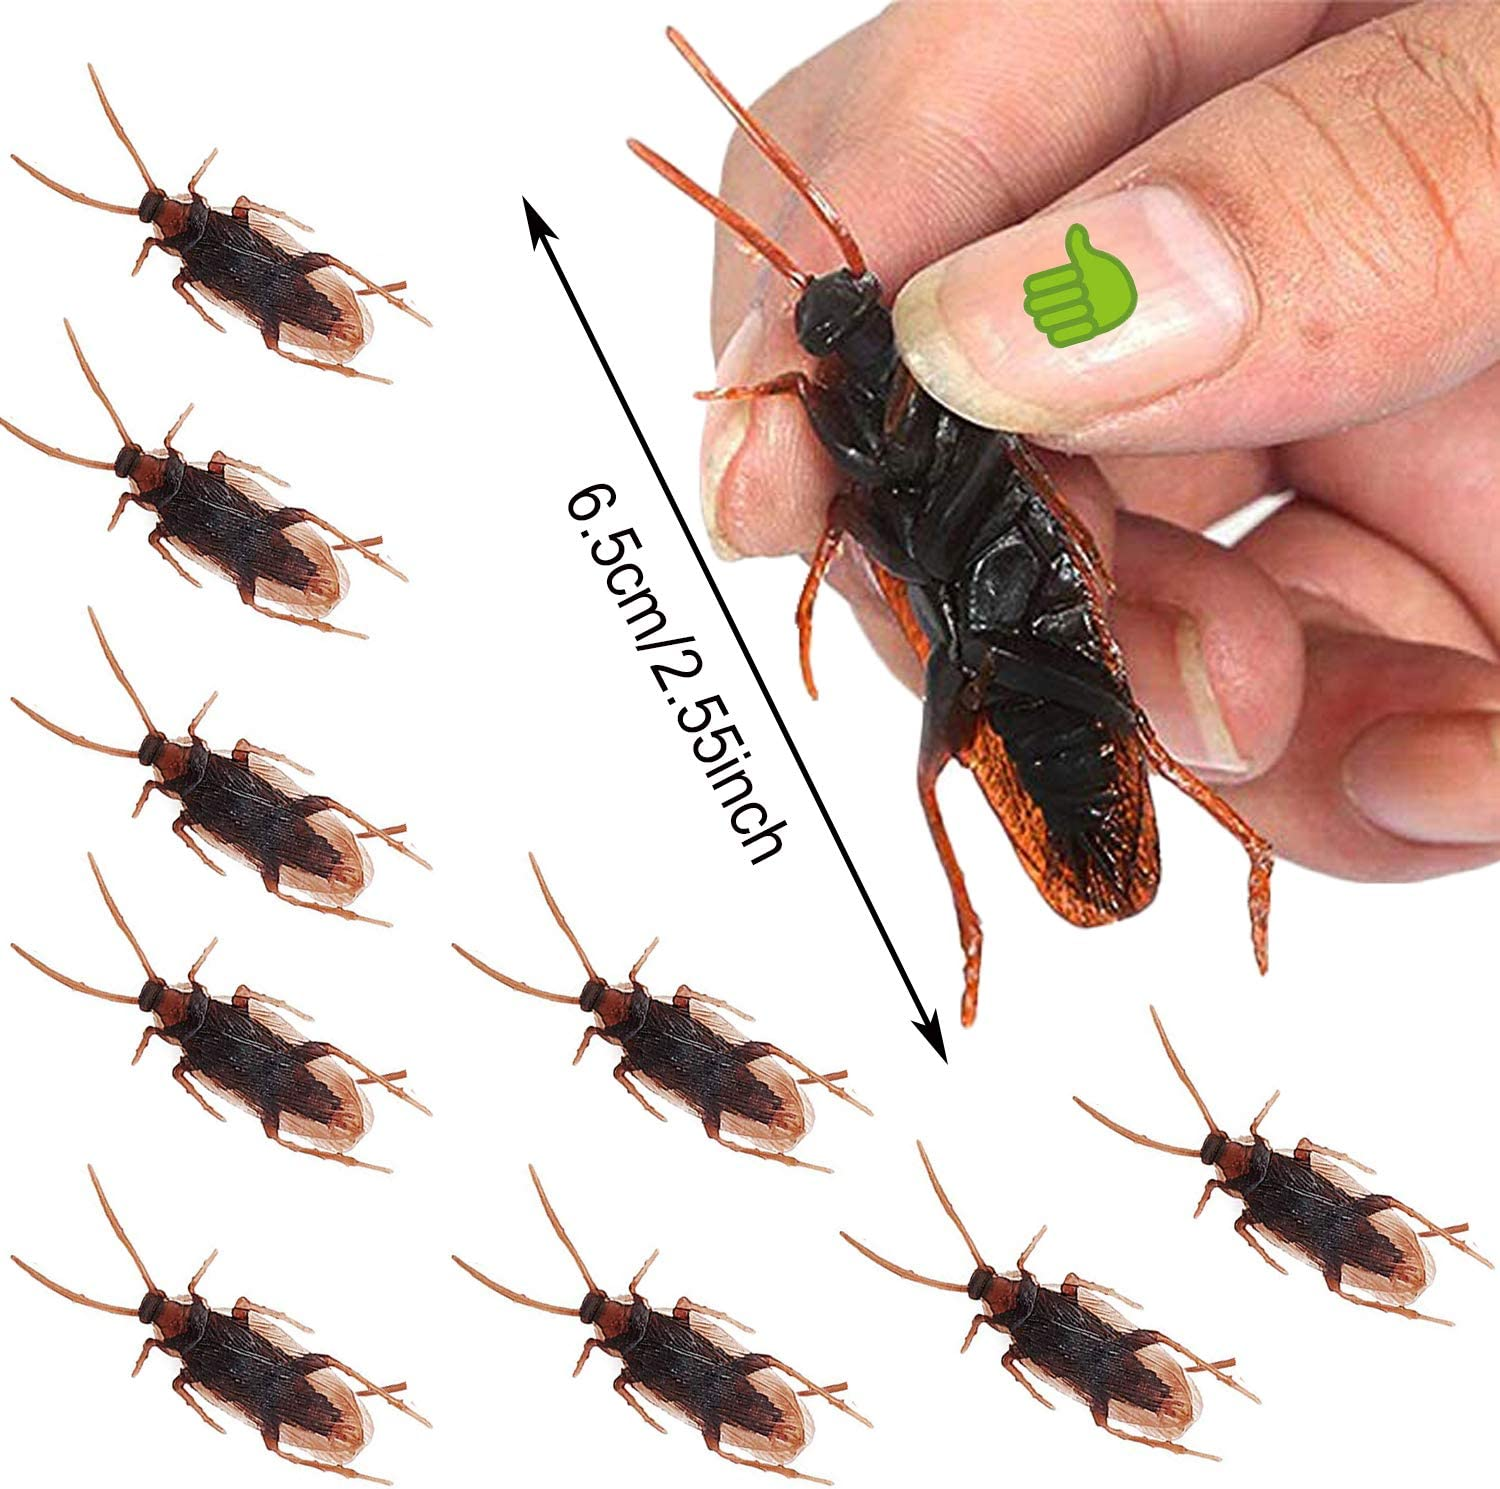 200PCS Simulated Realistic Cockroach Halloween Decoration Fake Cockroaches Prank Insects Novelty Deceptive Props Toy for Kid/'s Trick Decor bluesees Cockroach Toy